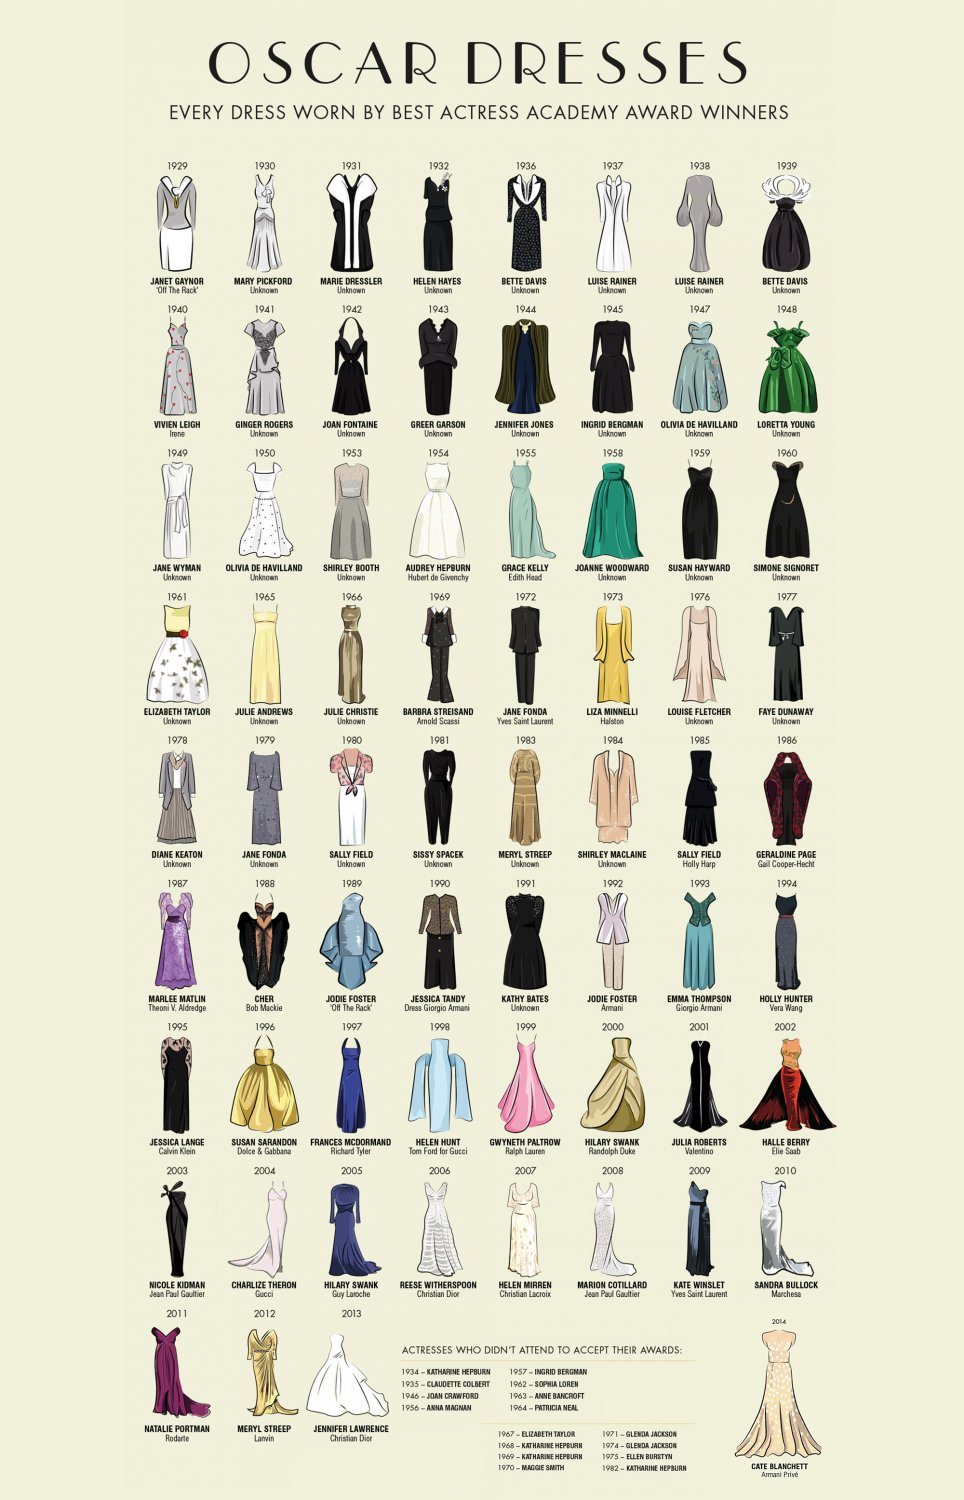 Oscar Dresses worn by Actress Award Winners Chart  13x19 inches Poster Print